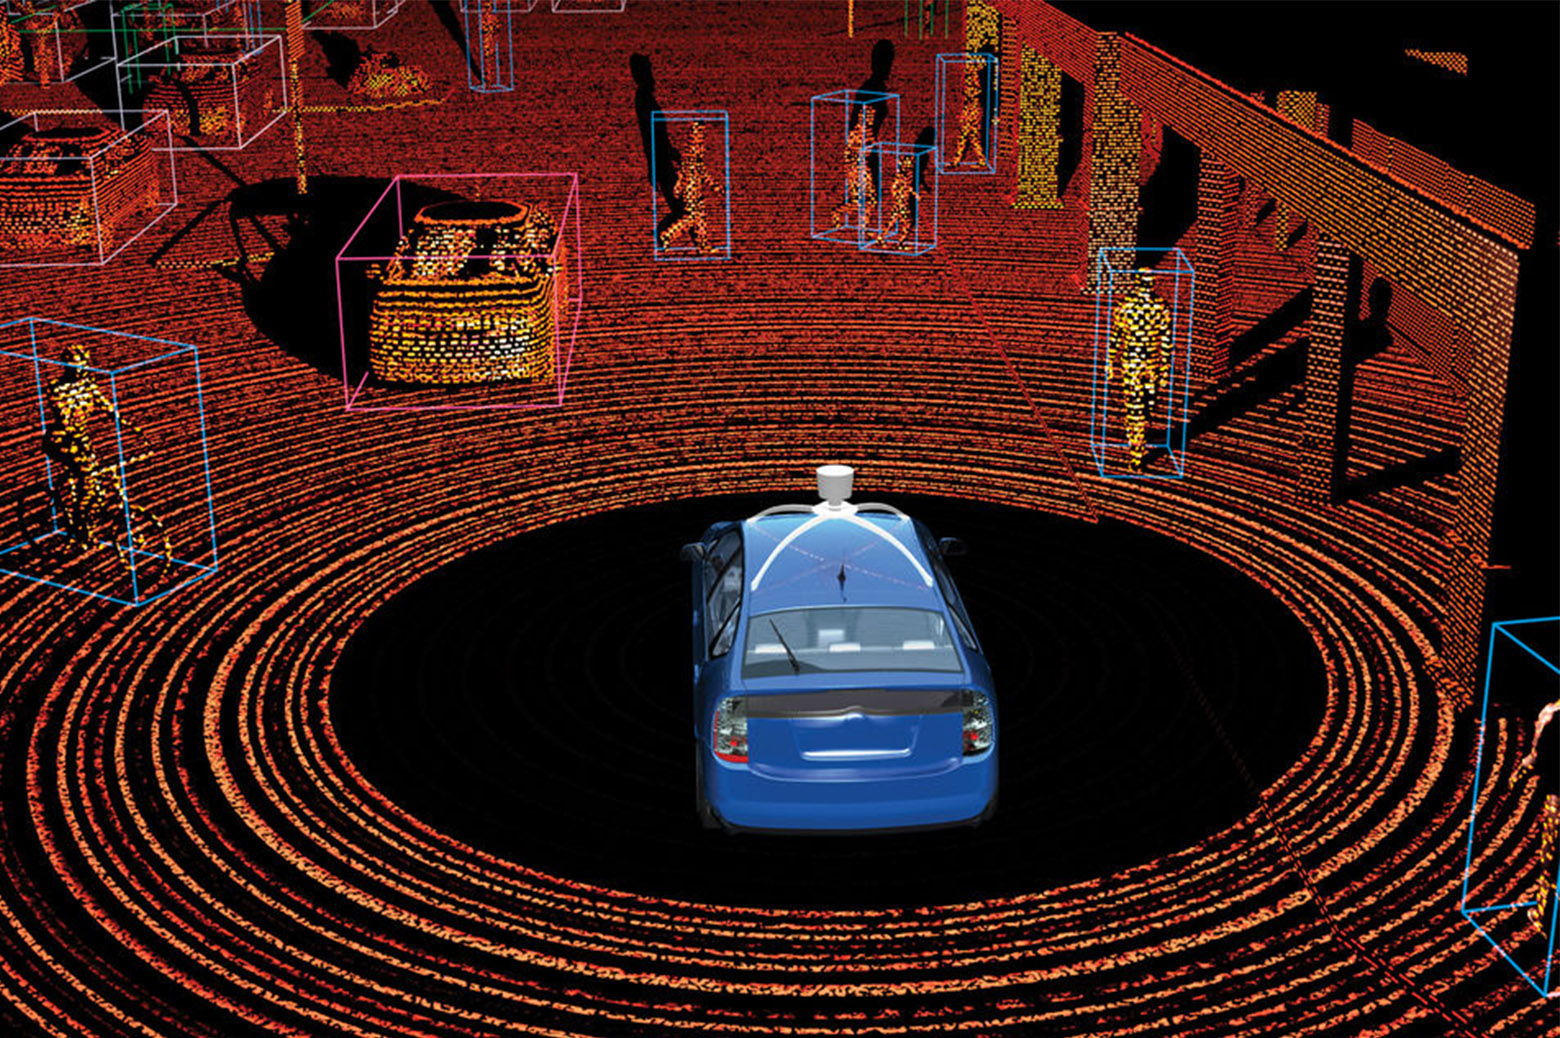 LiDAR sensors and what they see